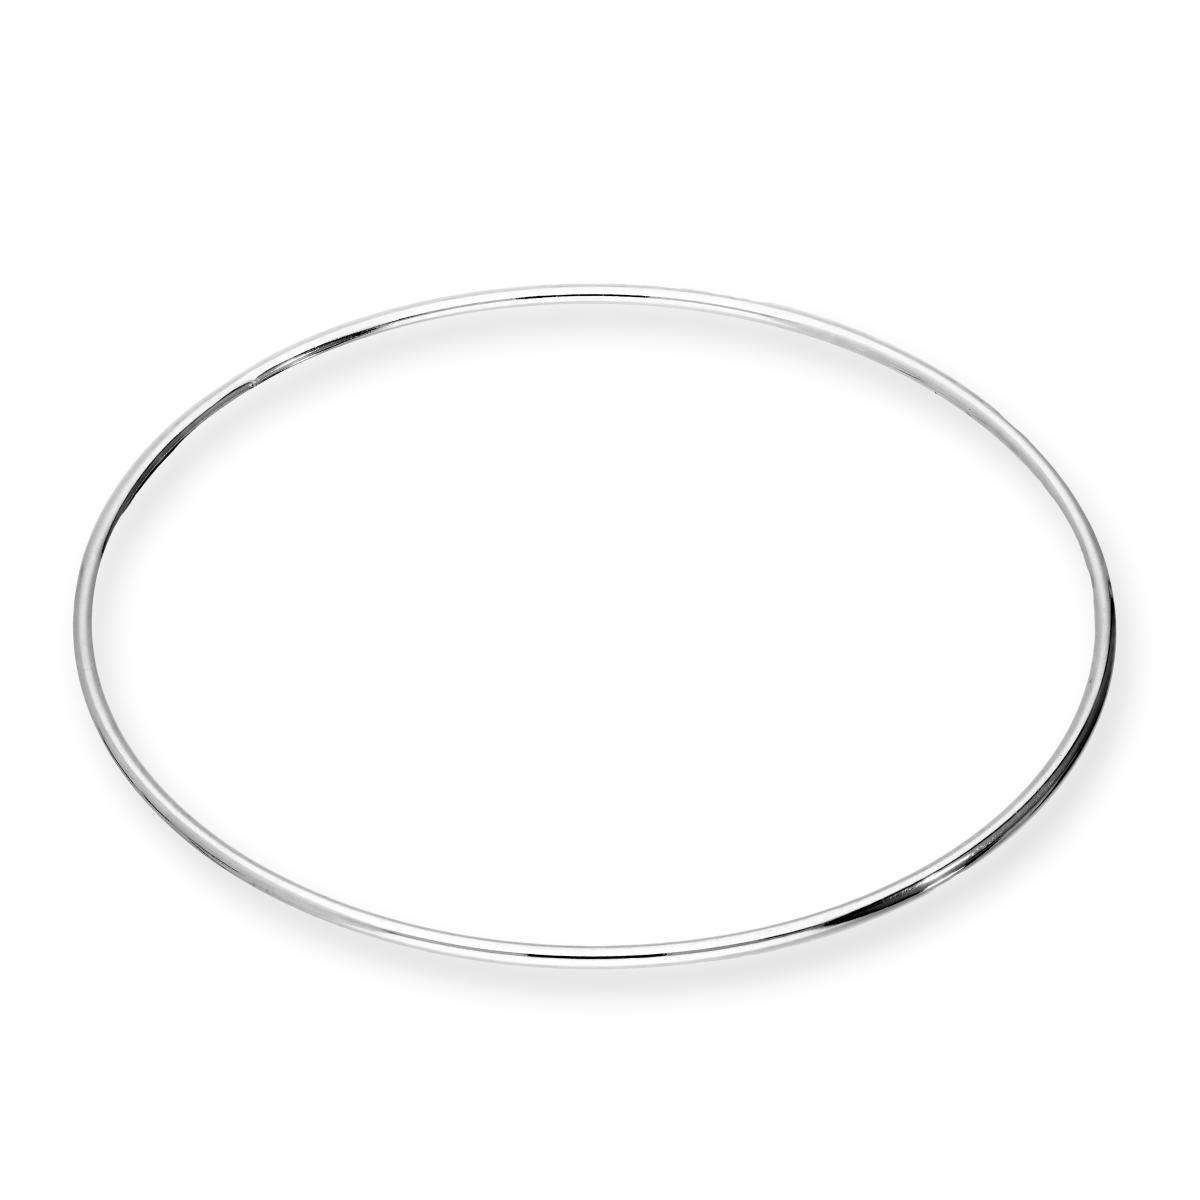 Alterative image for Sterling Silver 2mm Round Bangle 68mm